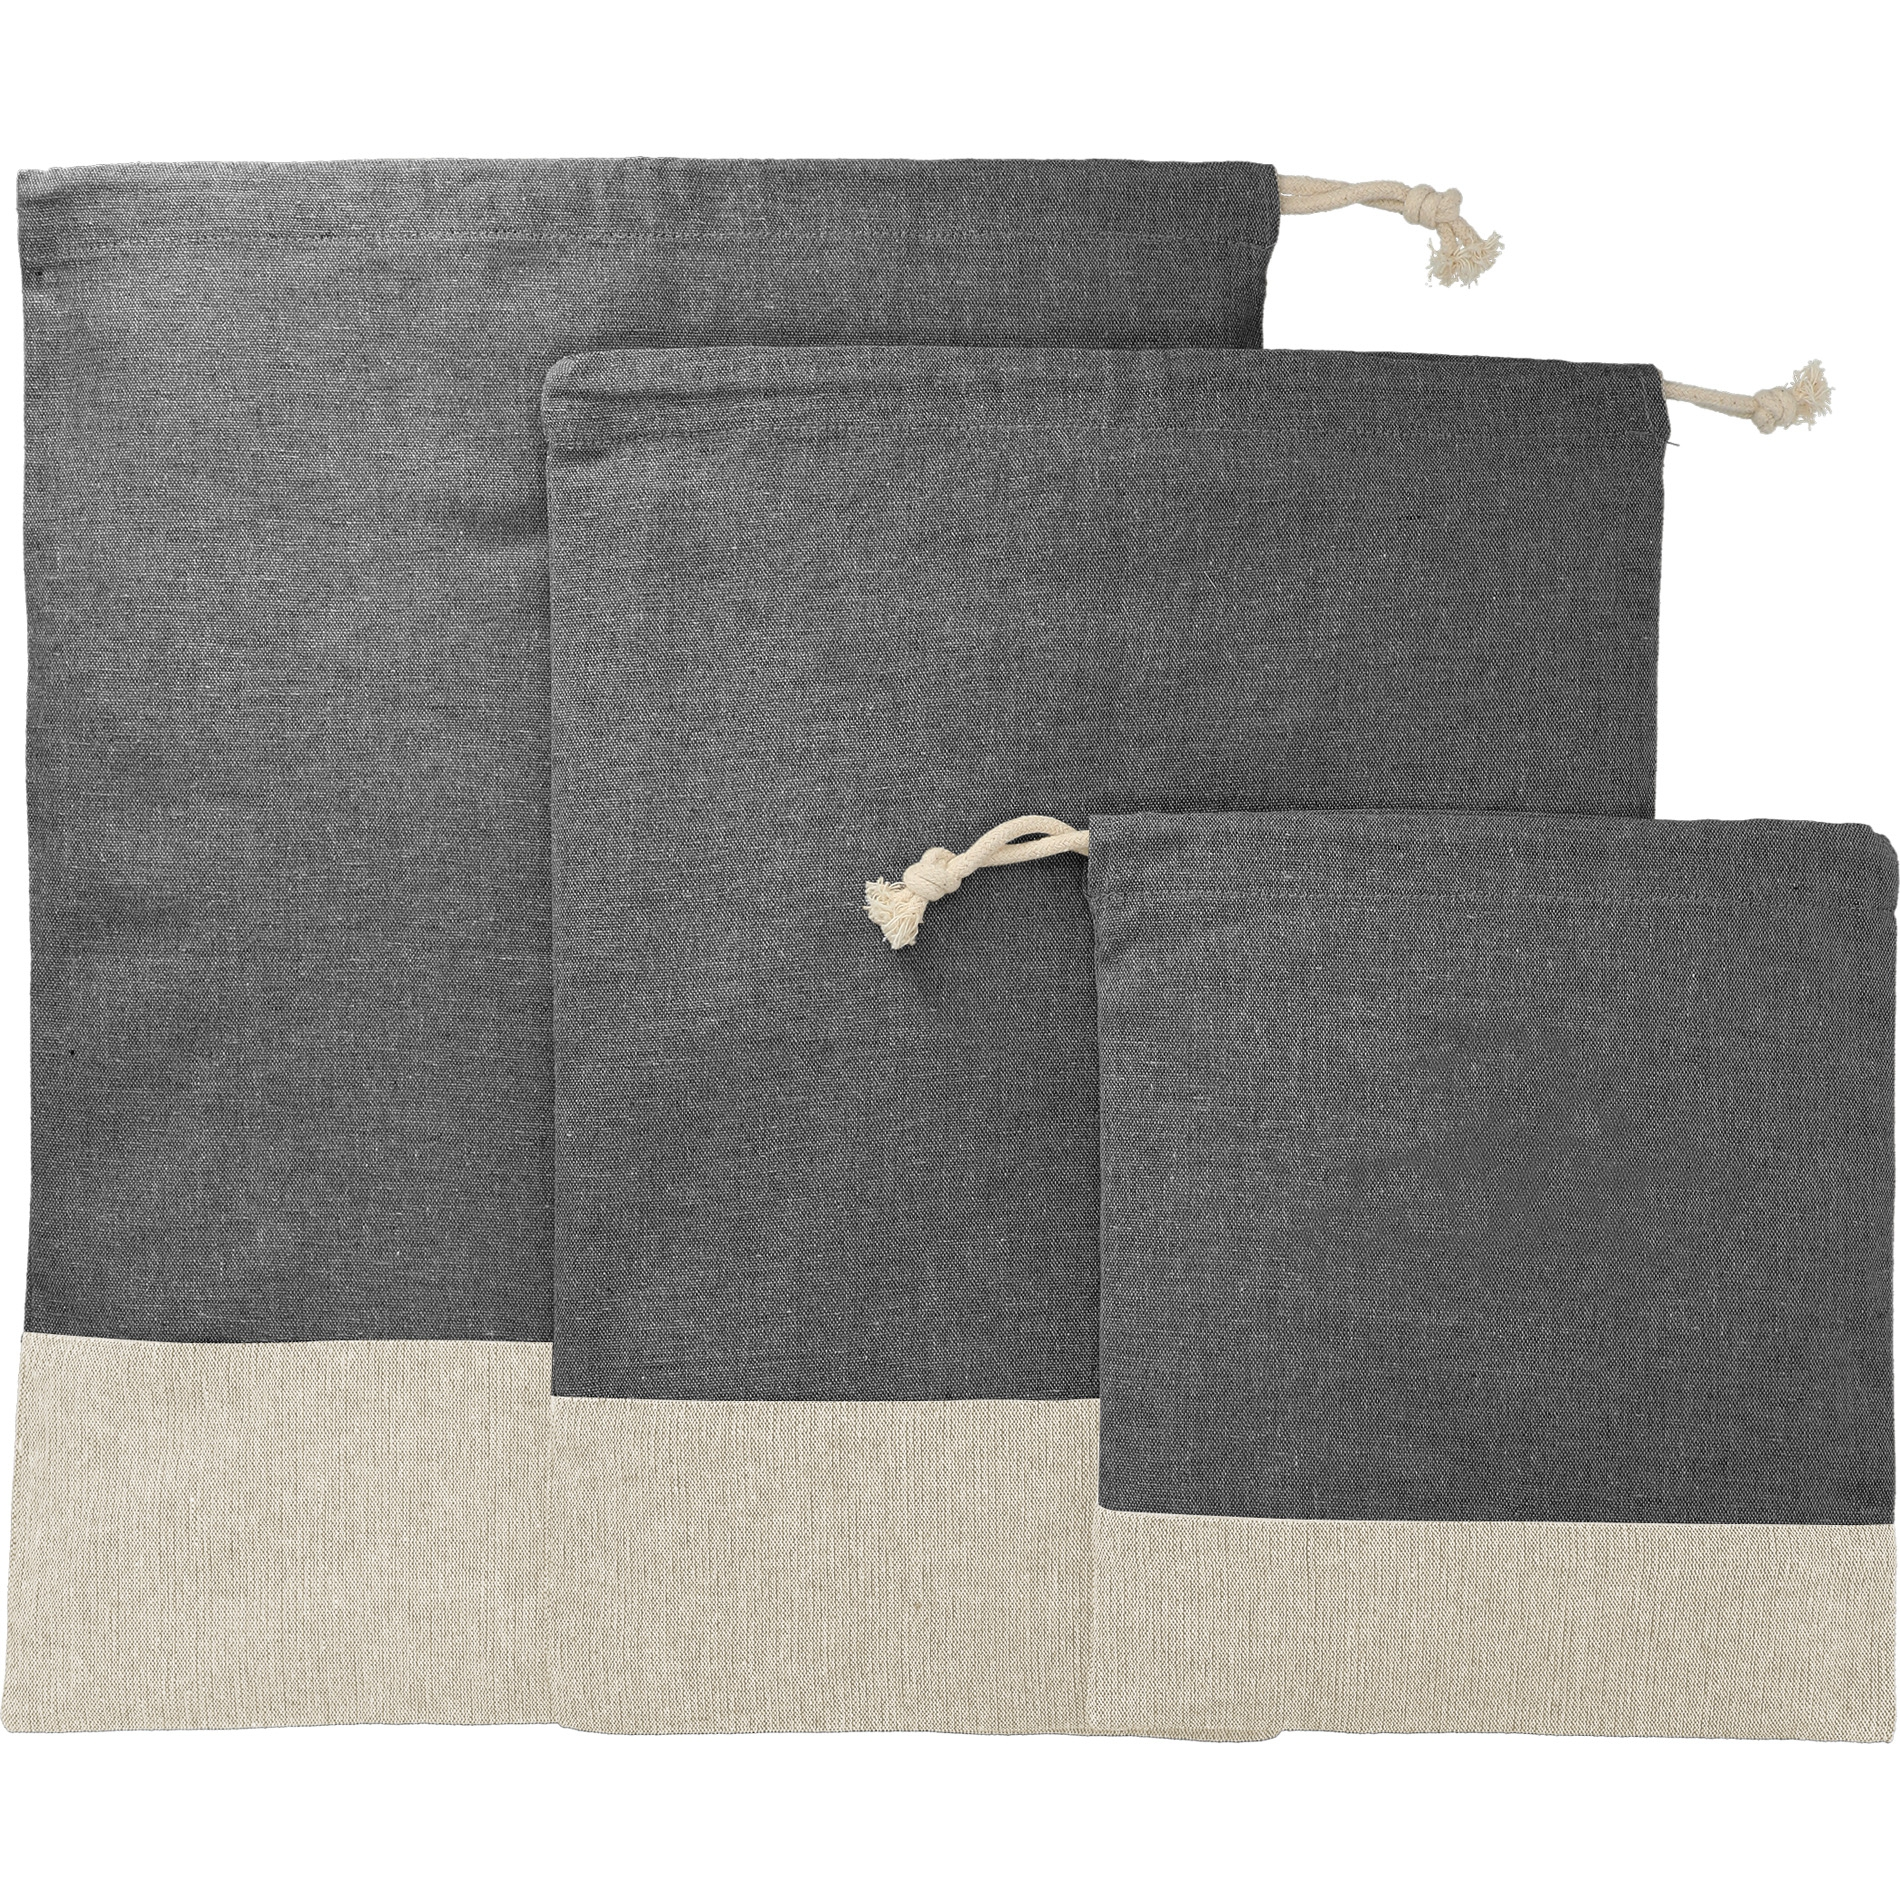 LEEDS Split Recycled 3pc Travel Pouch Set from NYFifth